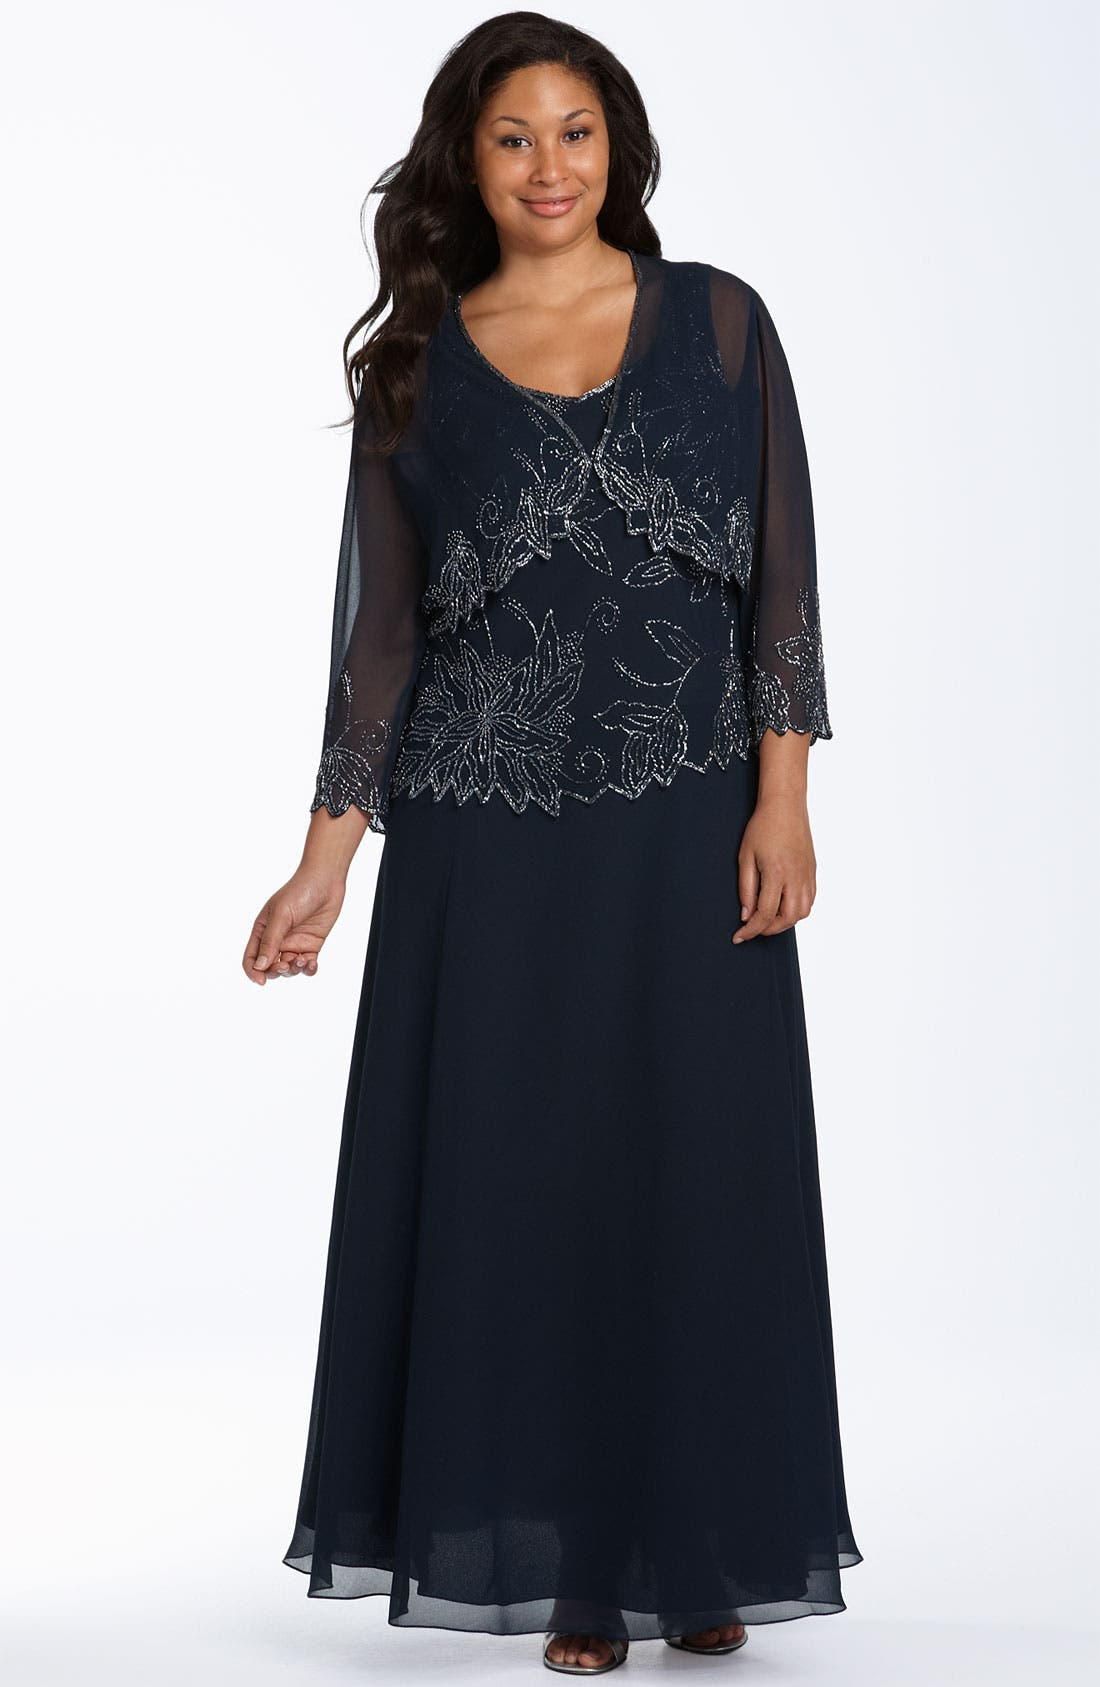 Main Image - J Kara Beaded Dress & Sheer Jacket (Plus Size)